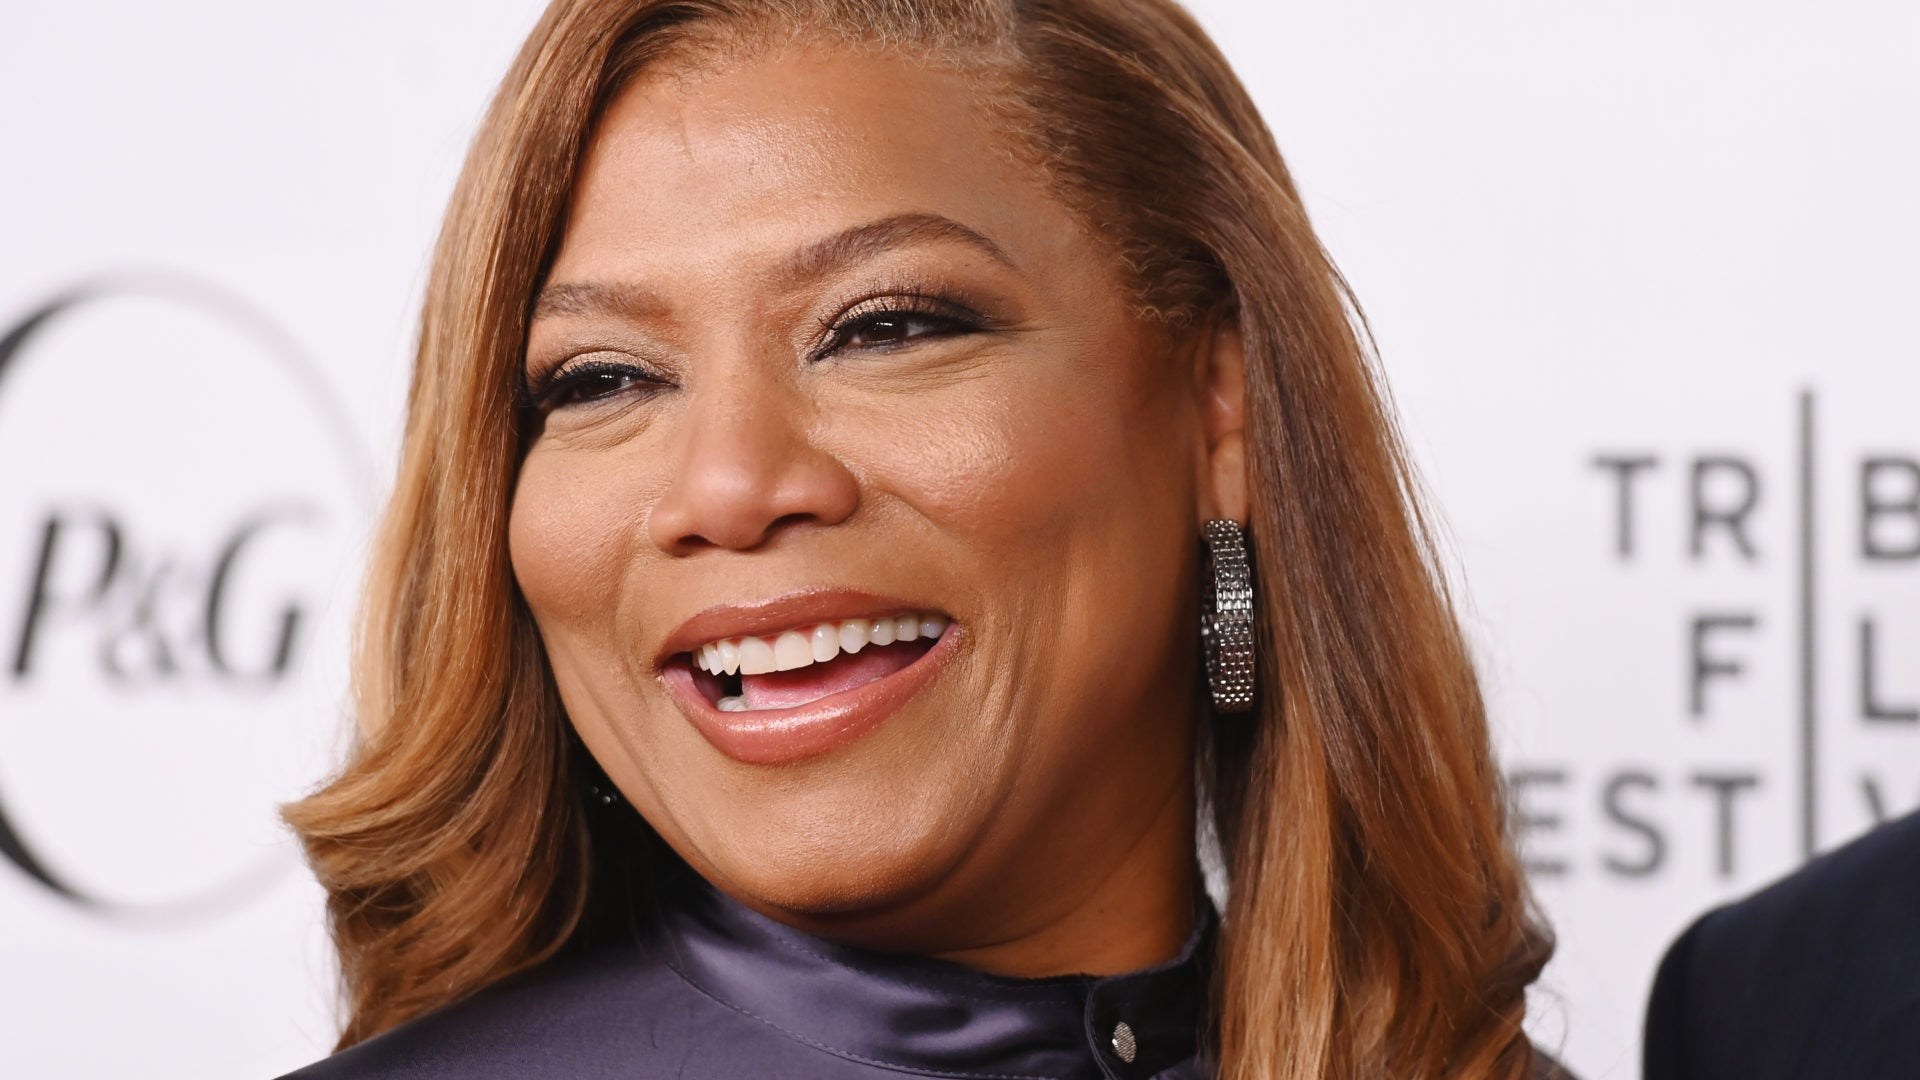 Queen Latifah To Star As Ursula in ABC's Live TV Musical Of 'The Little Mermaid'